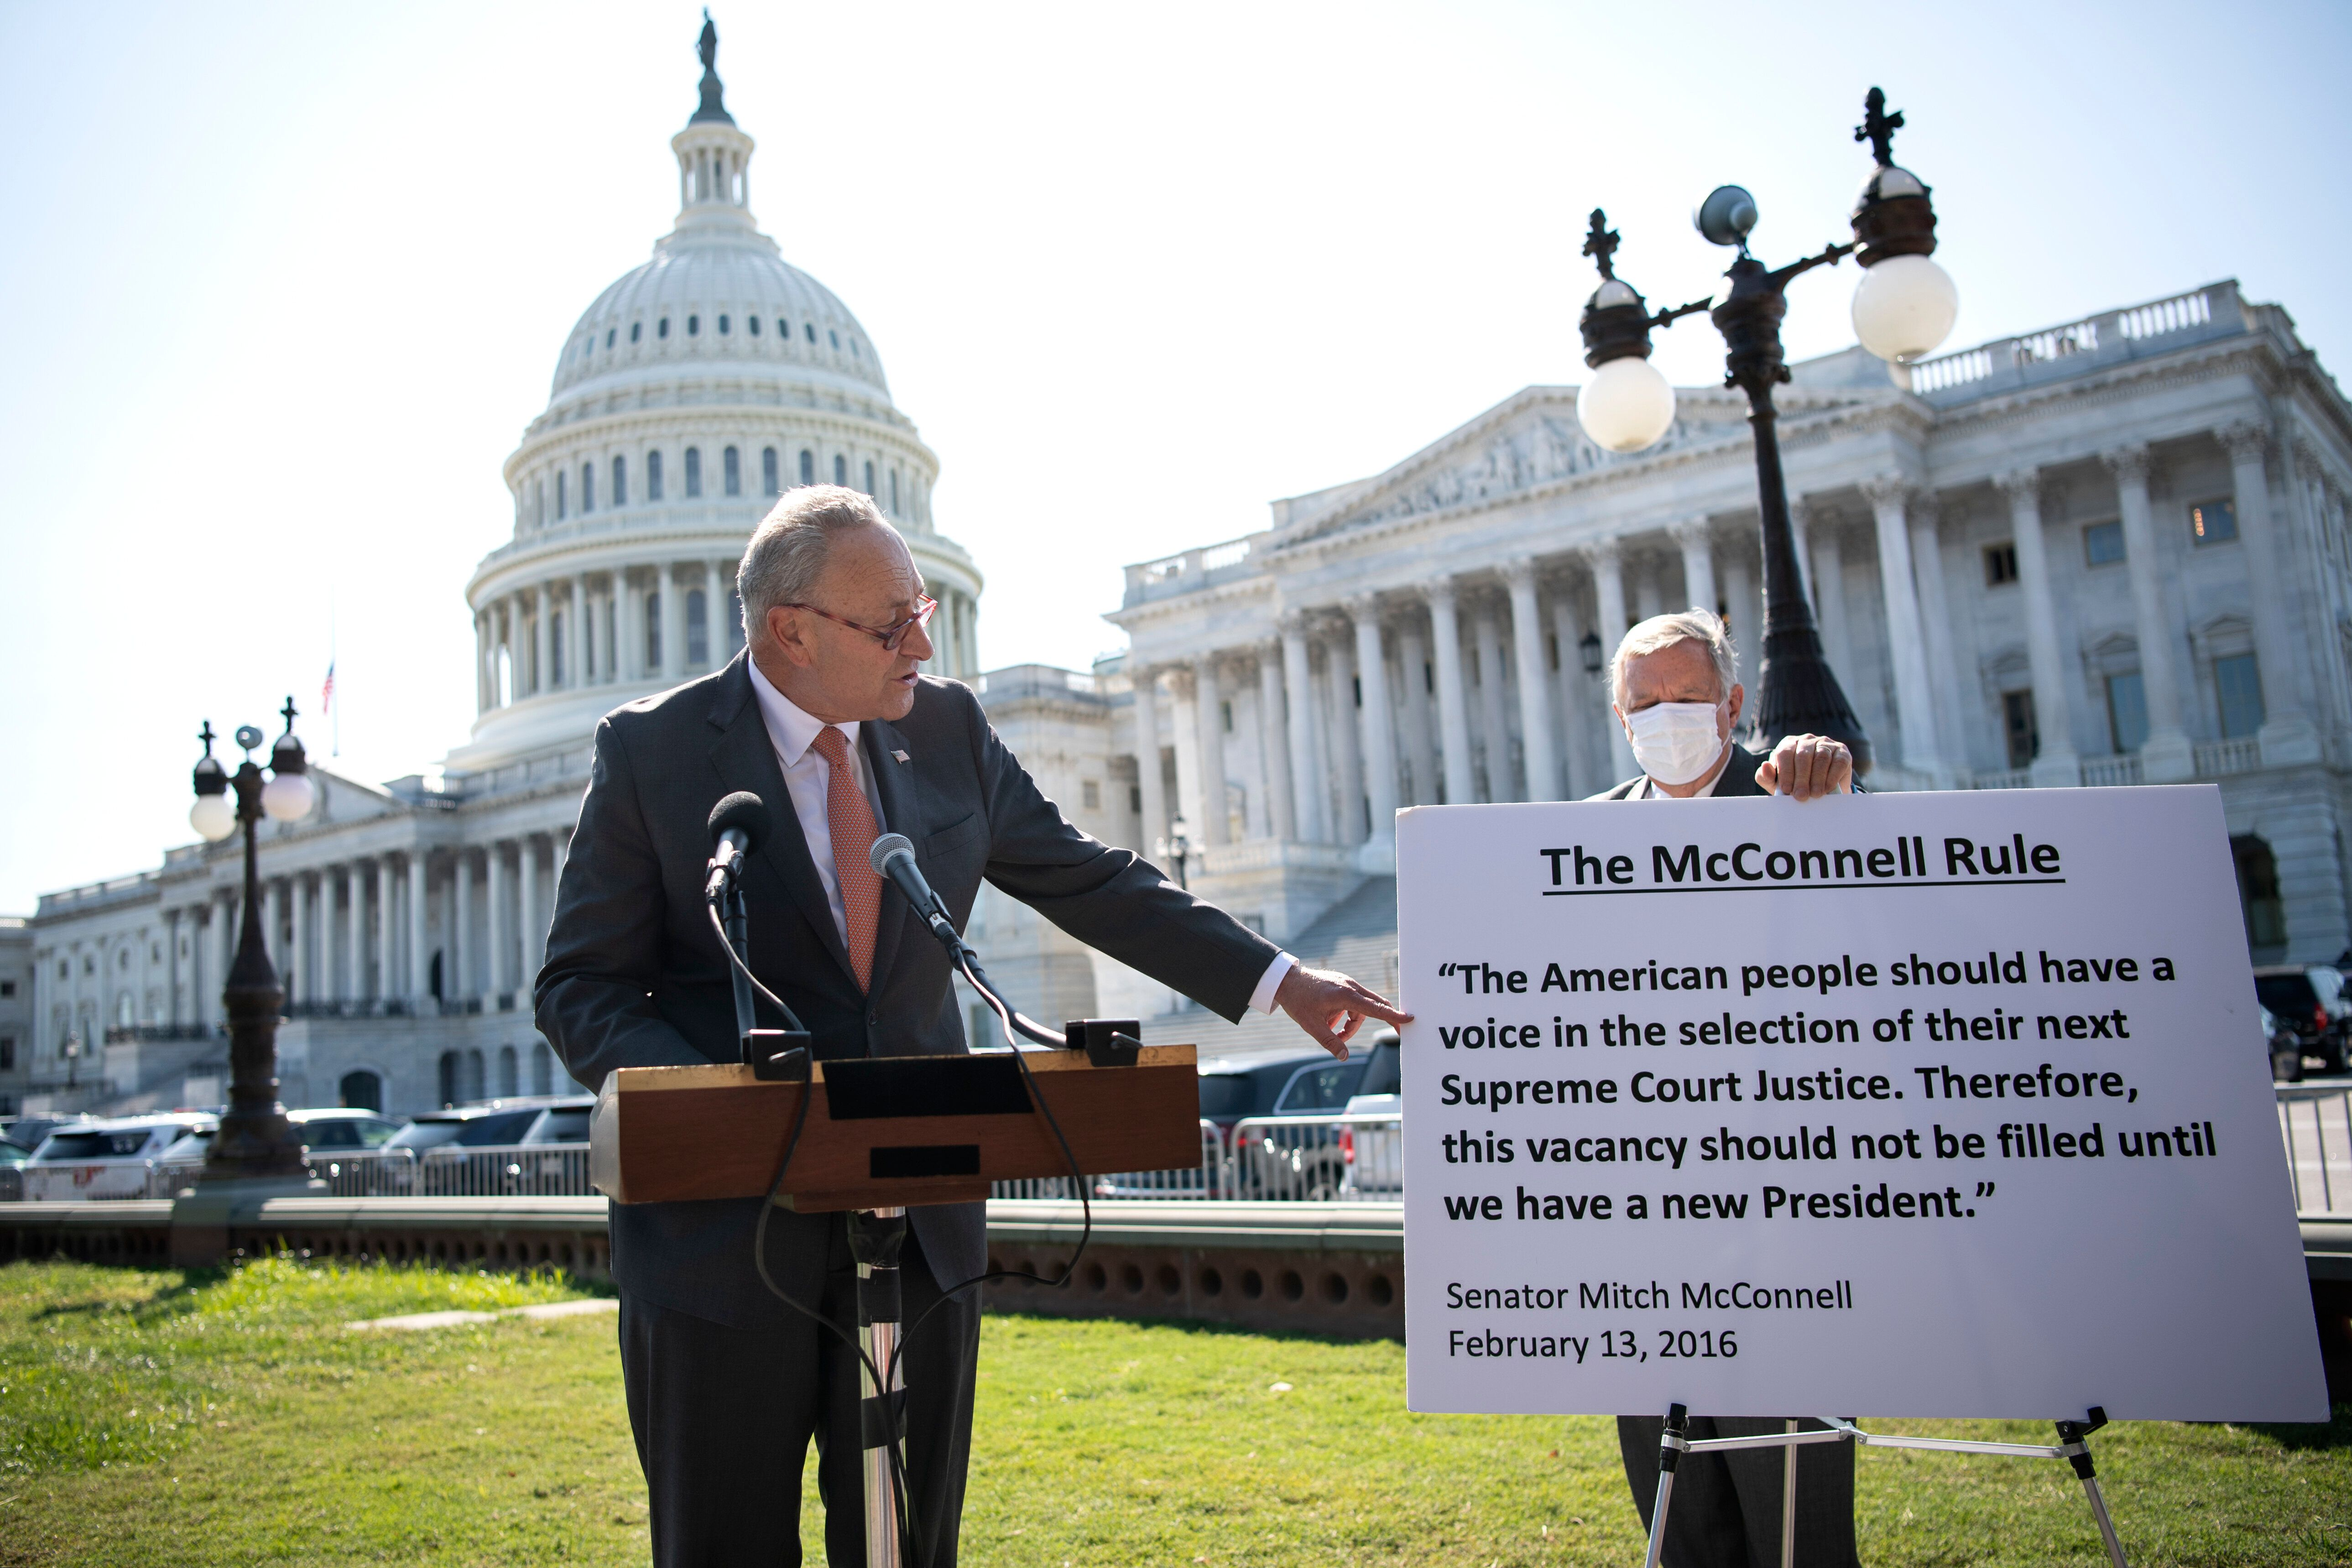 Senate Minority Leader Chuck Schumer (D-NY) has been pressing the case that Republicans are guilty of the rankest hypocrisy b